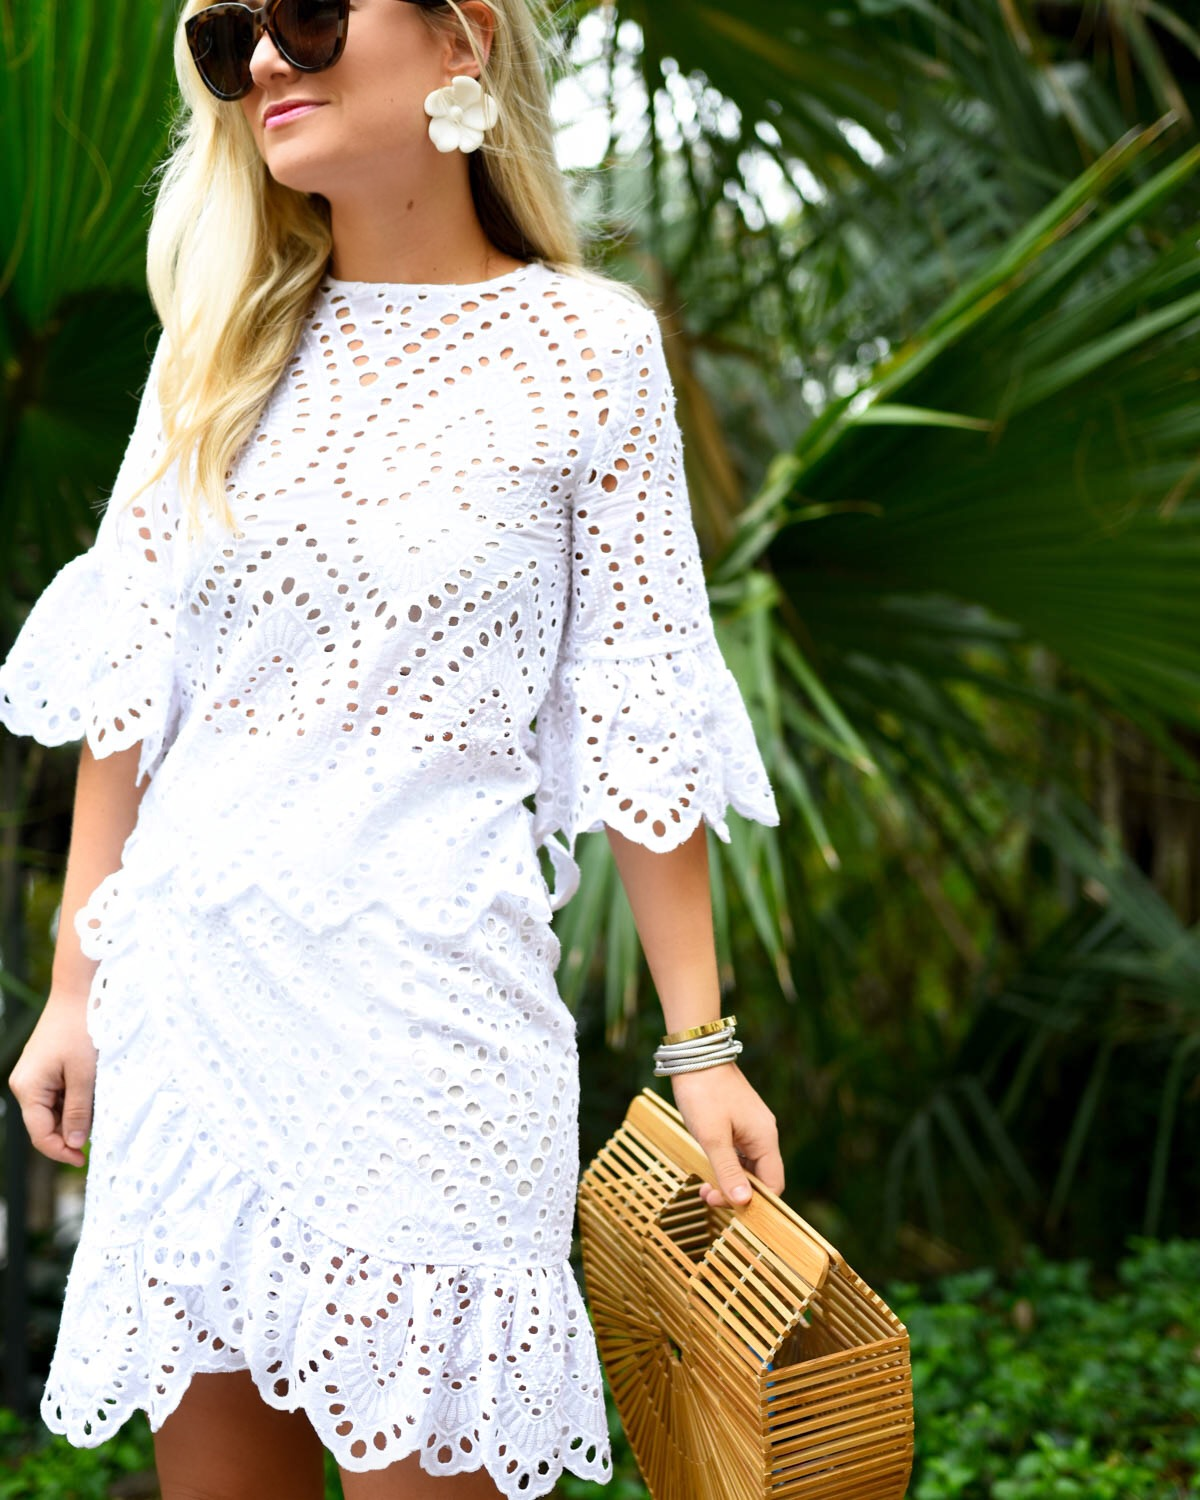 White-eyelet-dress, Winona-Australia-dress, Valerie-Wrap-Dress, White-wrap-dress, Revolve-dresses, Cult-Gaia-Arc-Bag, David-Yurman-Bracelets